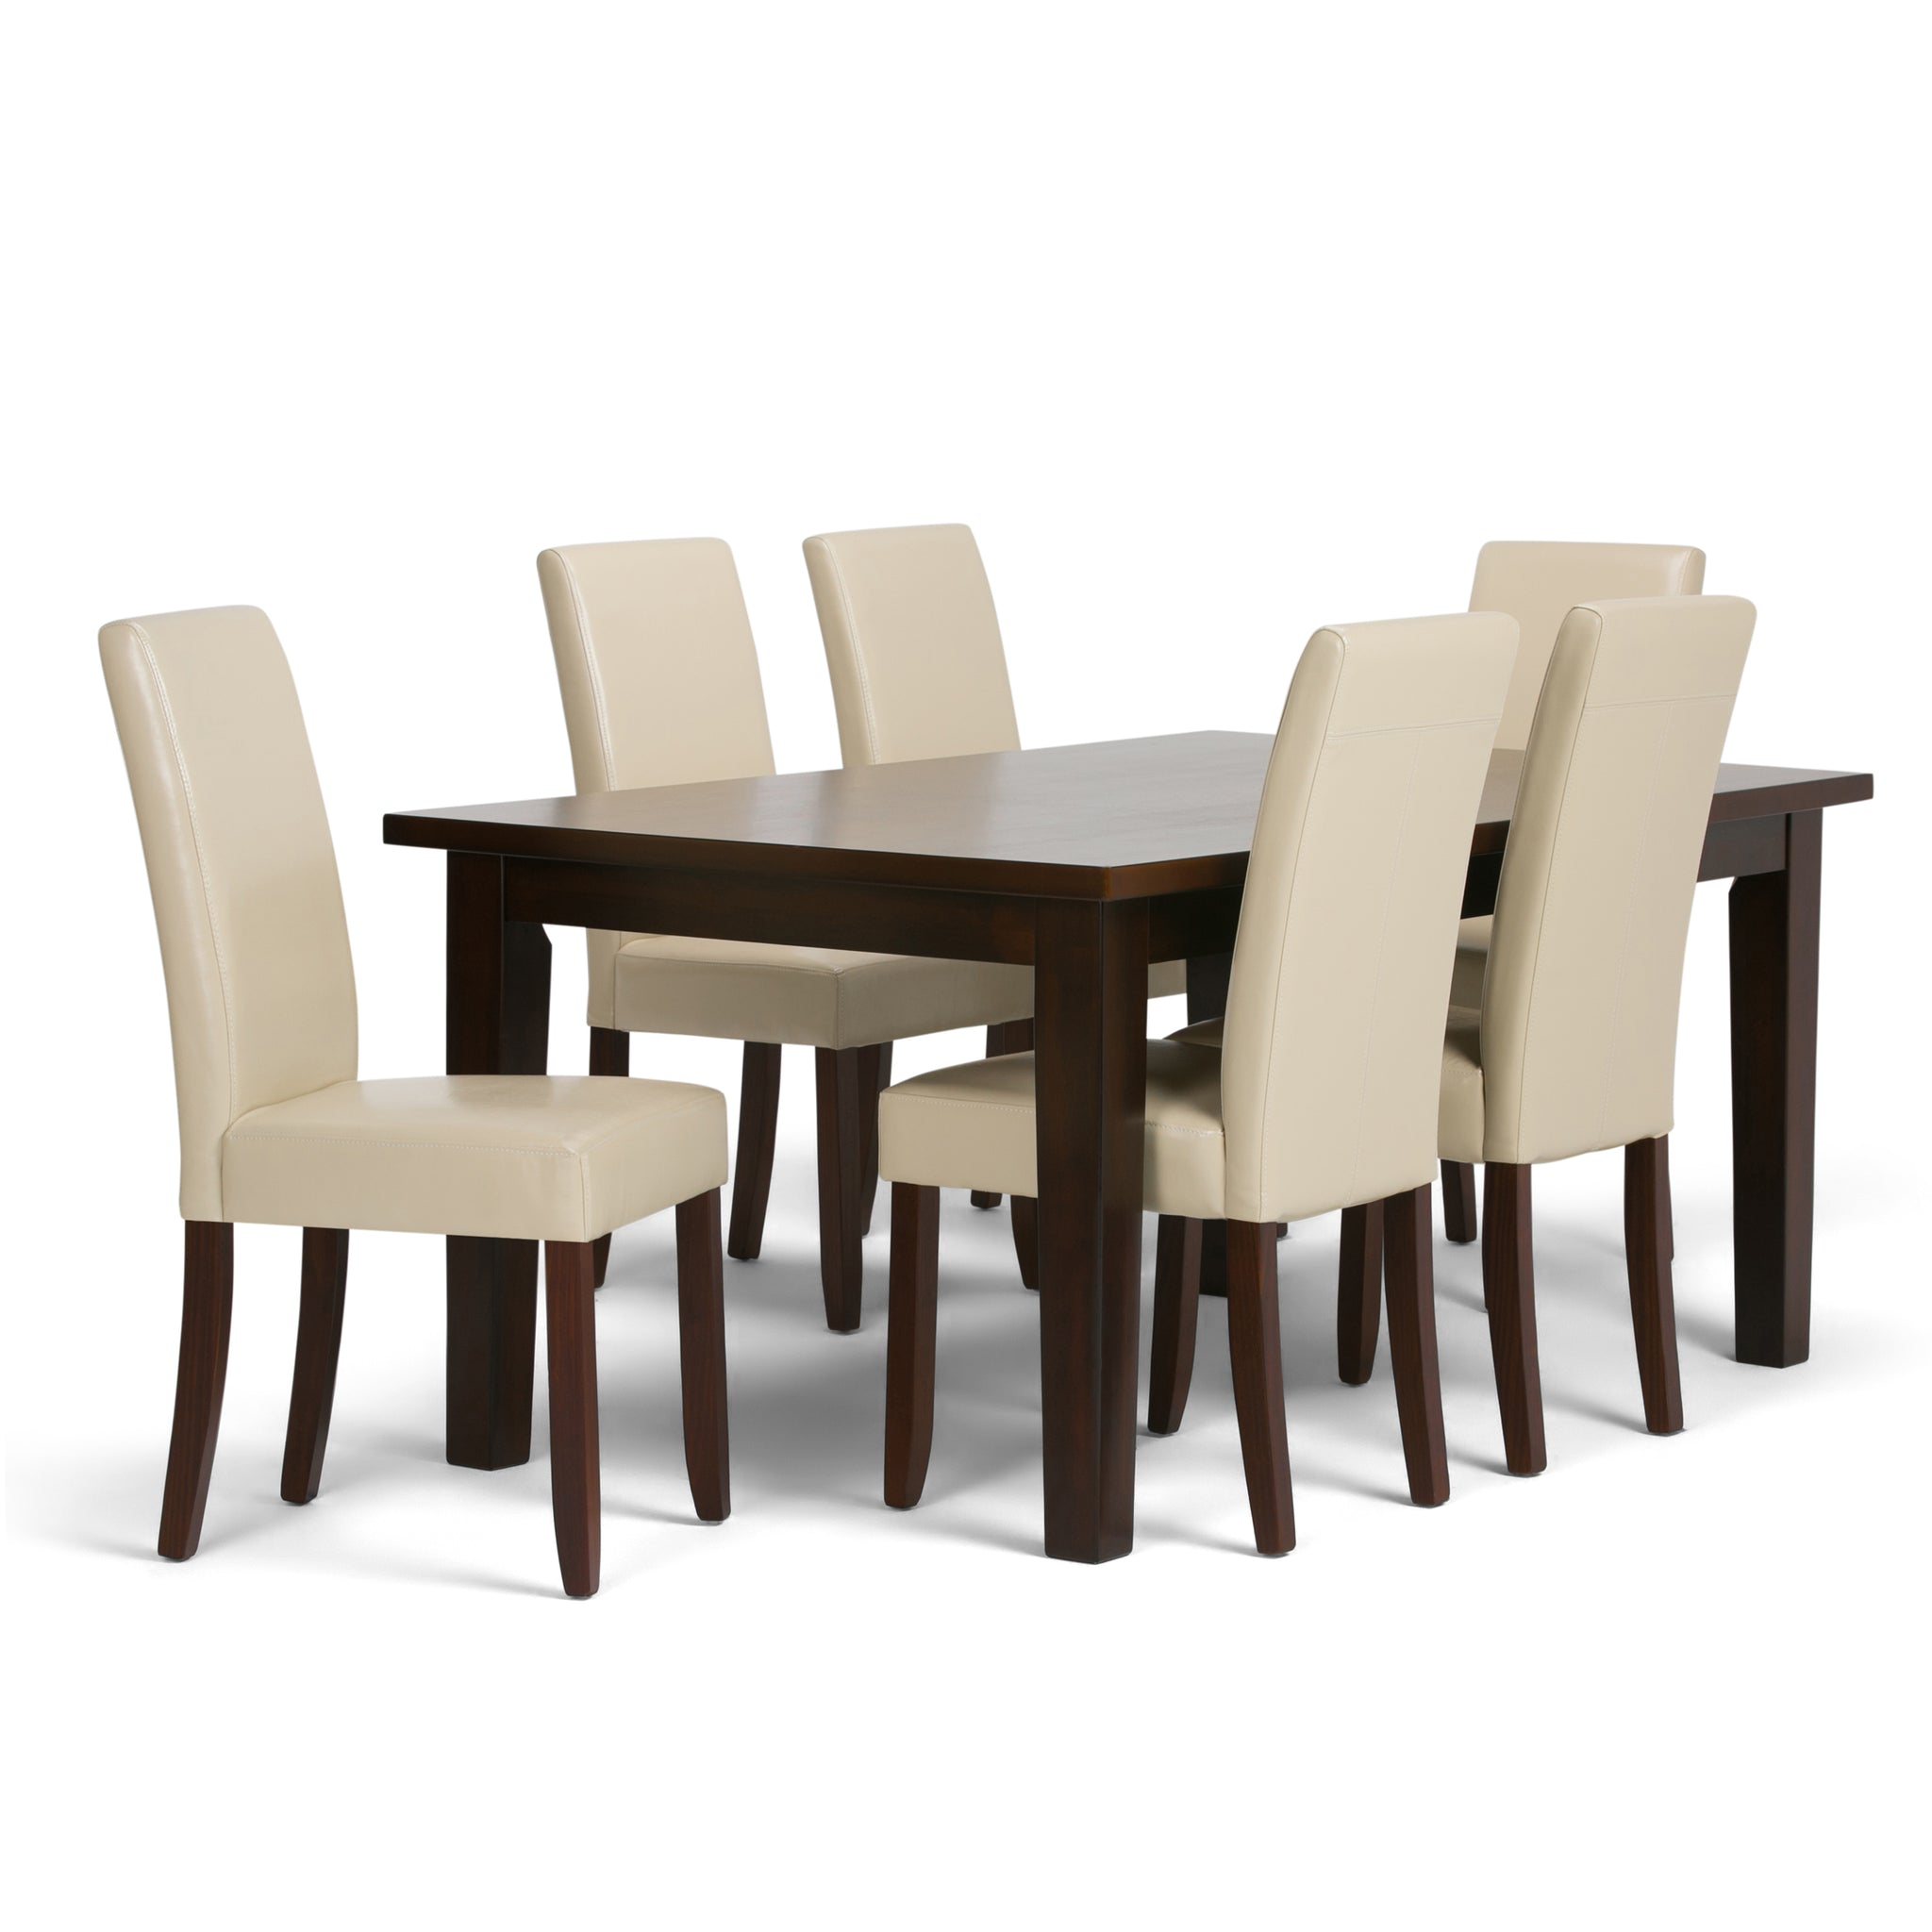 Acadian 7 piece Dining Set in Satin Cream Faux Leather